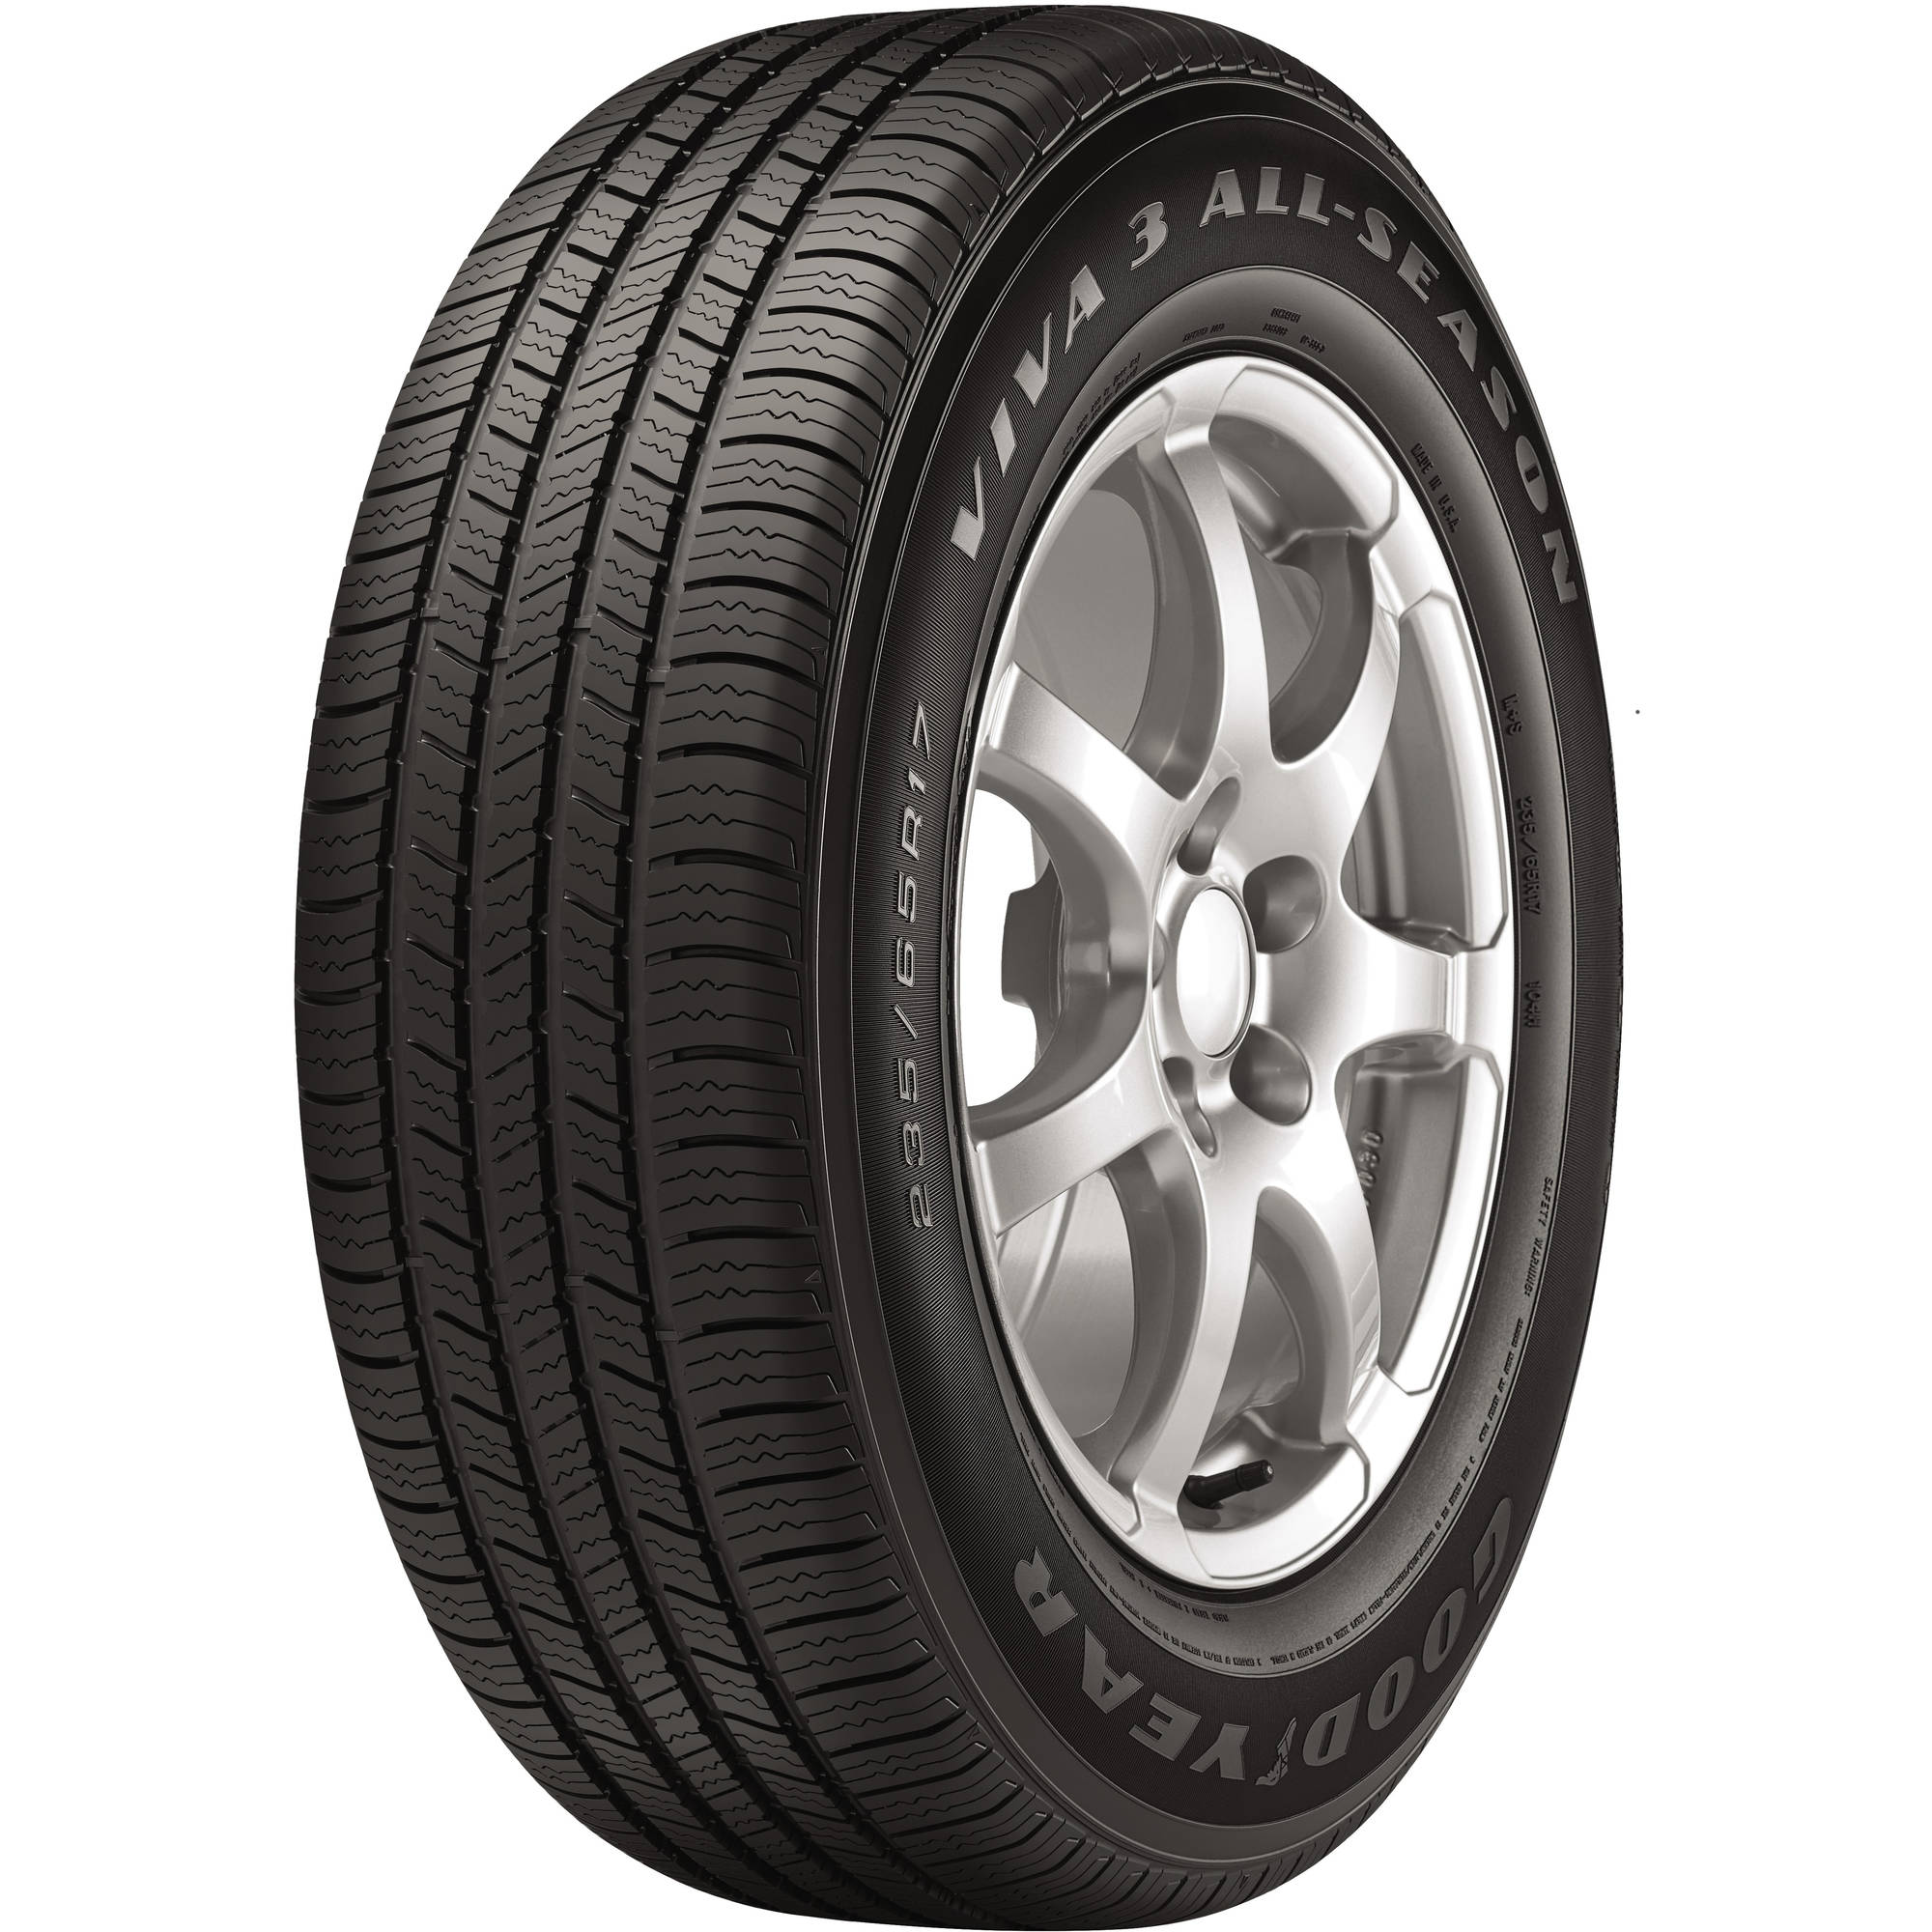 Goodyear Viva 3 All-Season Tire 225/55R17 97H